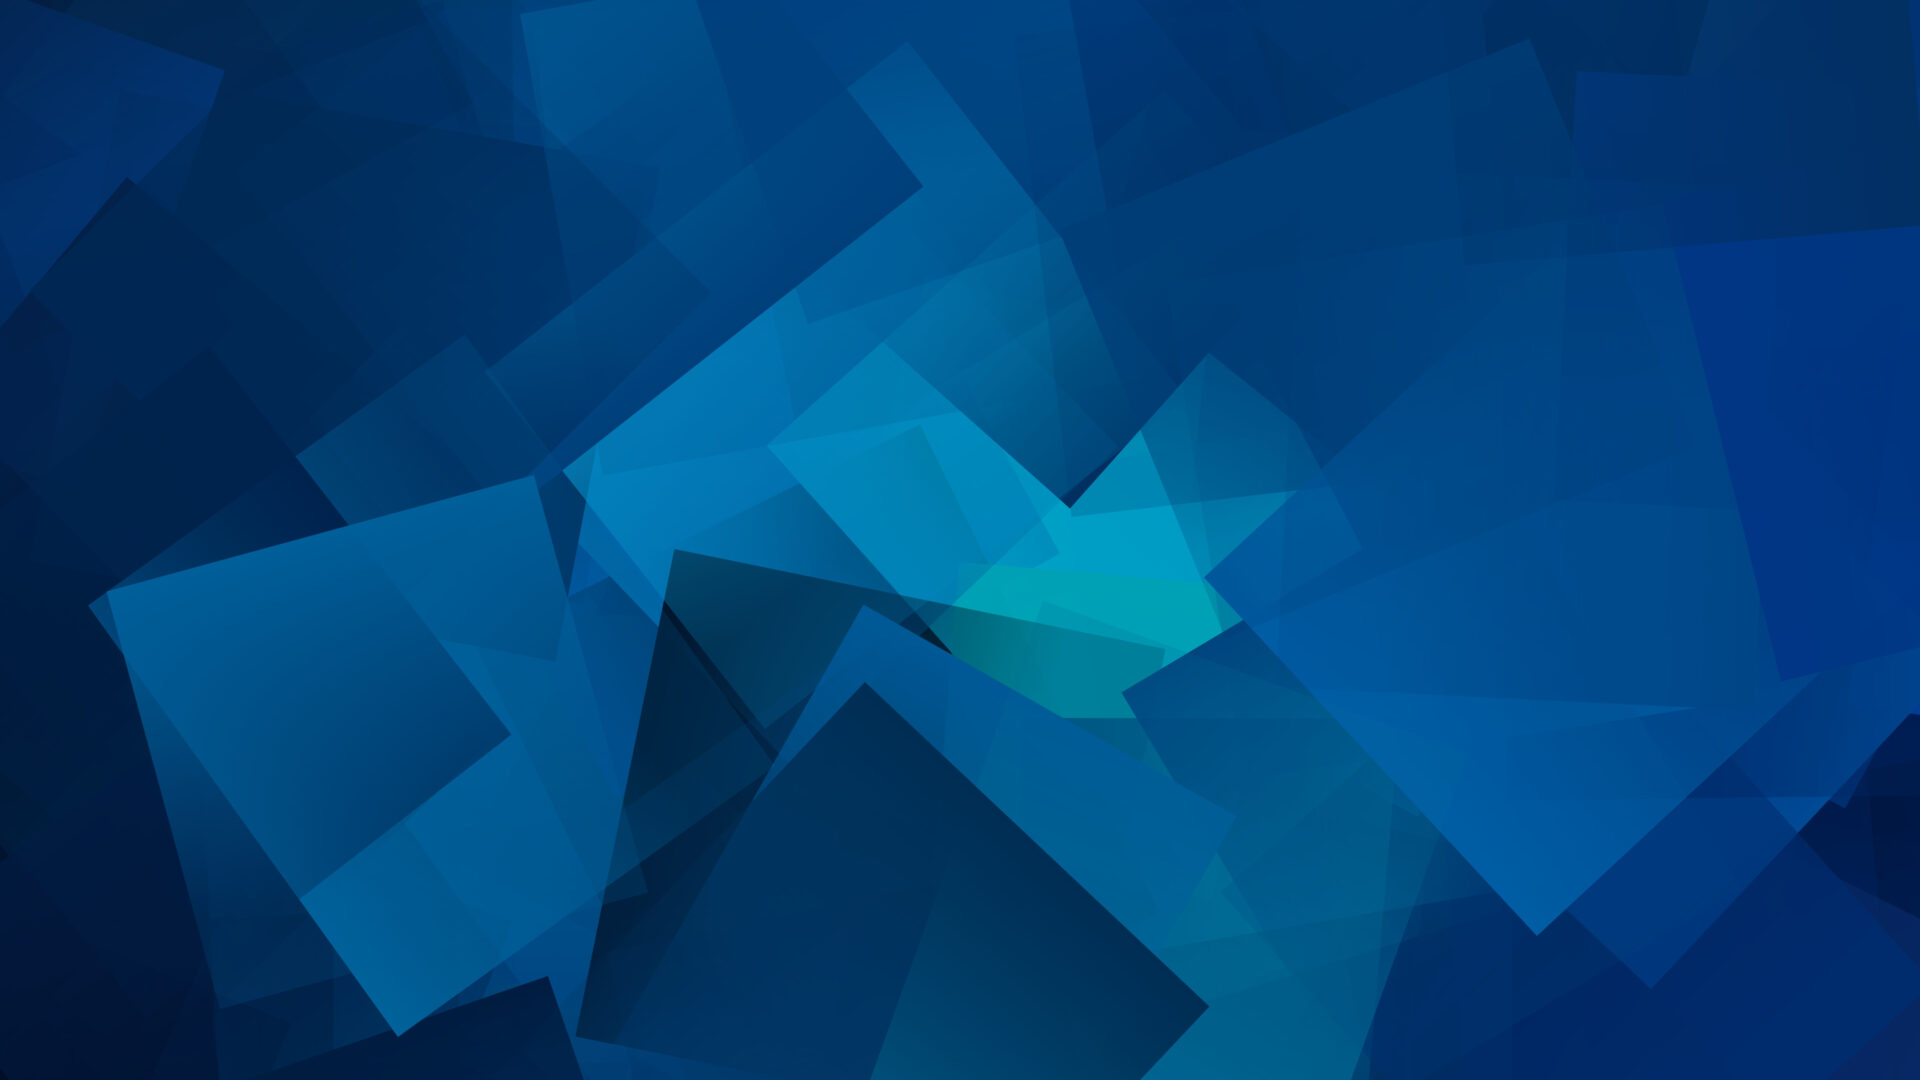 Blue Geometic Cubes 4K367679810 - Blue Geometic Cubes 4K - OnePlus, Geometic, Cubes, blue